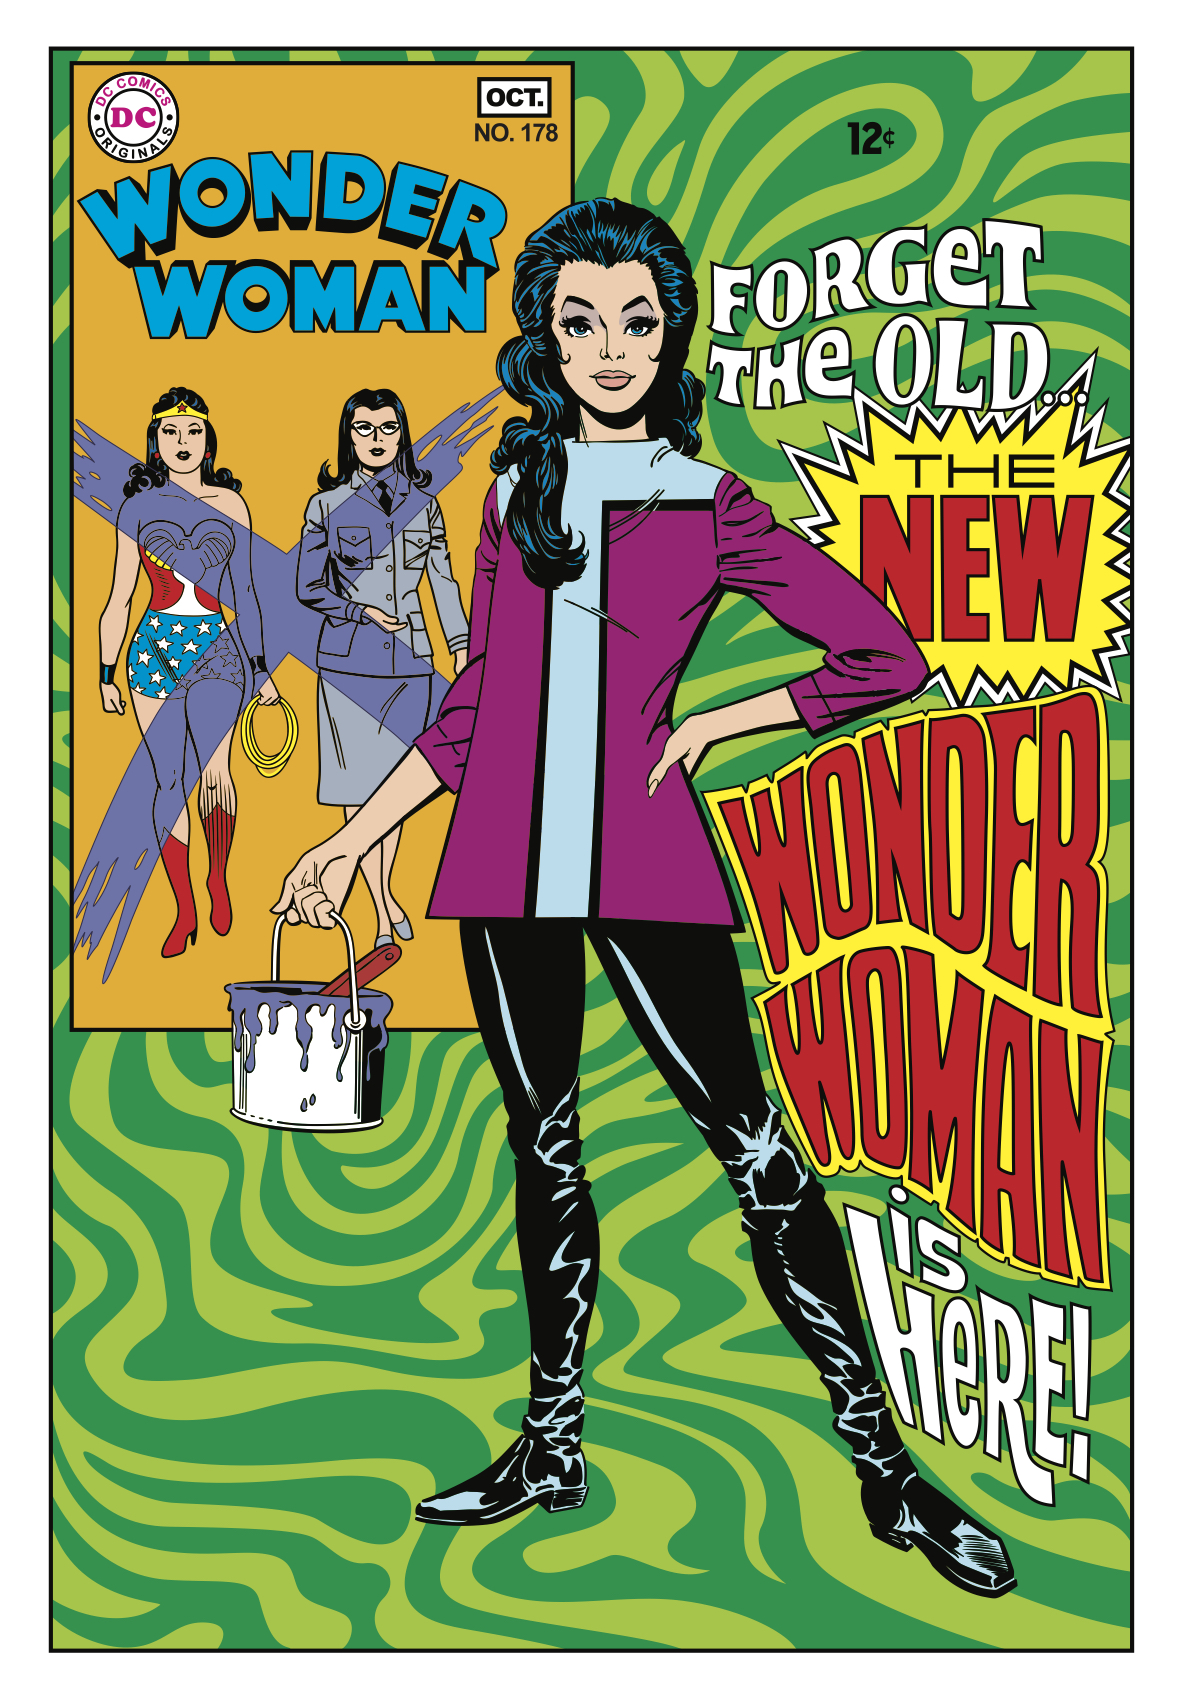 1968: Rejecting her dual identity as hero and secretary, DC rebrands Wonder Woman as a James Bond–like spy figure. In this psychedelic version, she loses her powers but gets to wear pants.